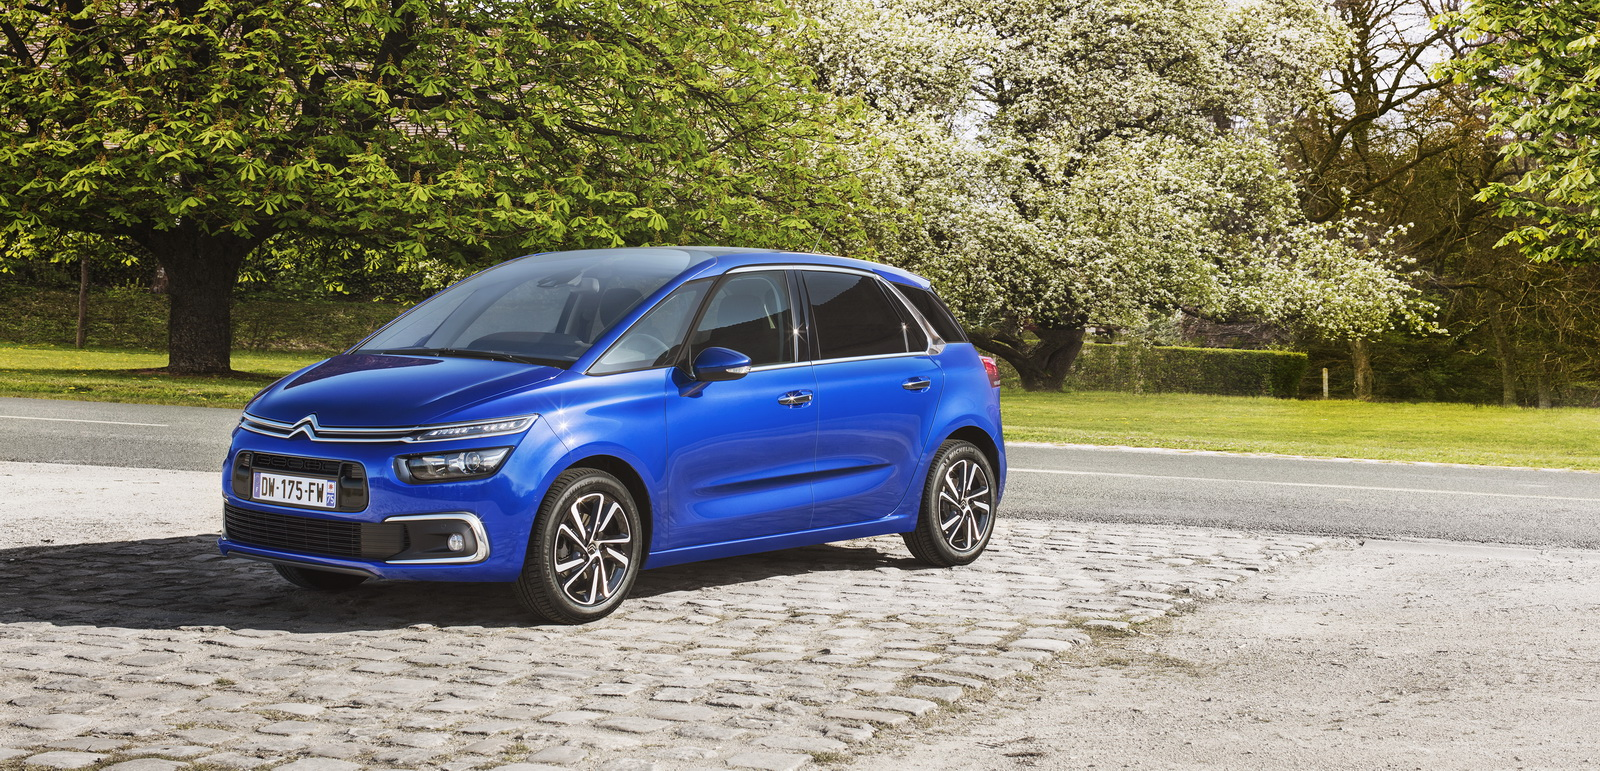 citroen updates c4 picasso grand picasso adds new petrol engines more tech 39 pics. Black Bedroom Furniture Sets. Home Design Ideas